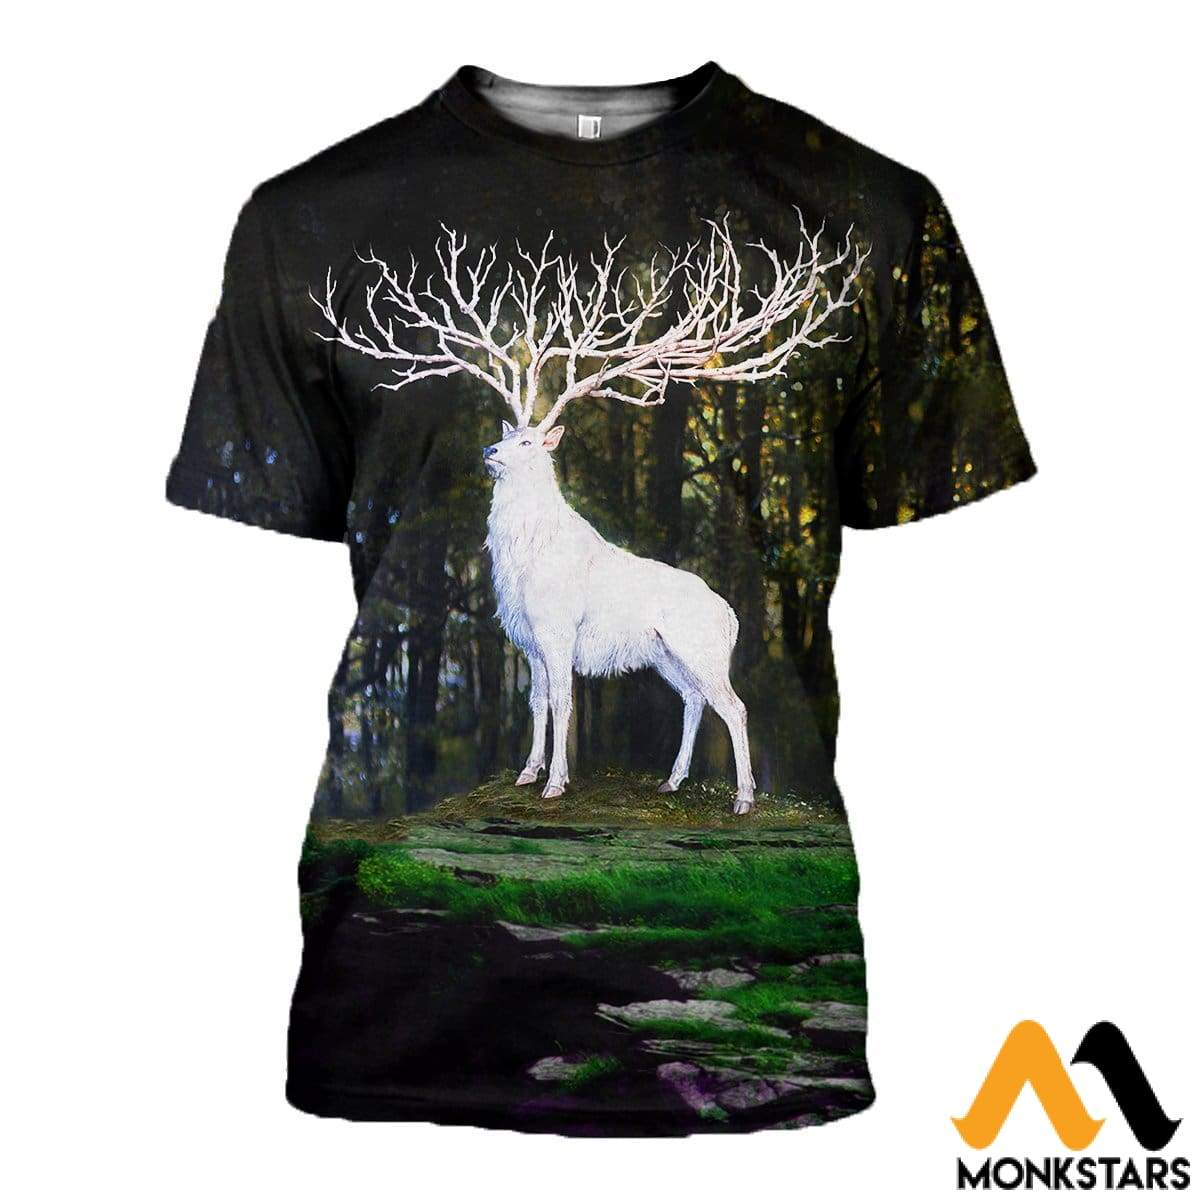 3D All Over Printed White Deer Shirts And Shorts T-Shirt / Xs Clothes